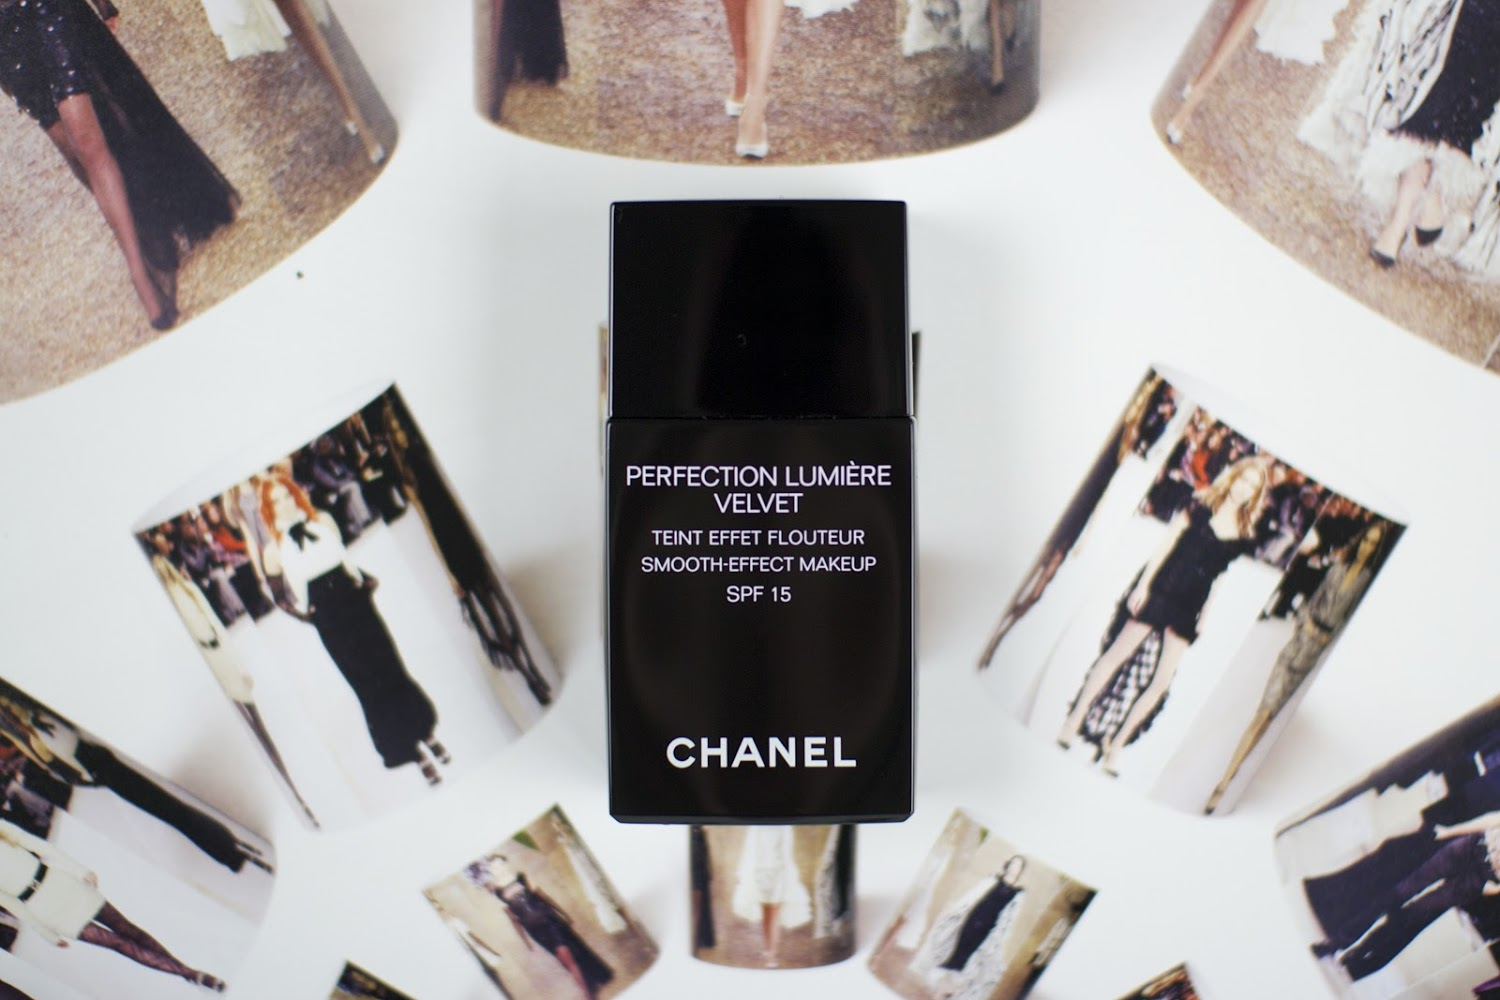 CHANEL Perfection Lumière Velvet Foundation, a.k.a) The New-Gen Matte